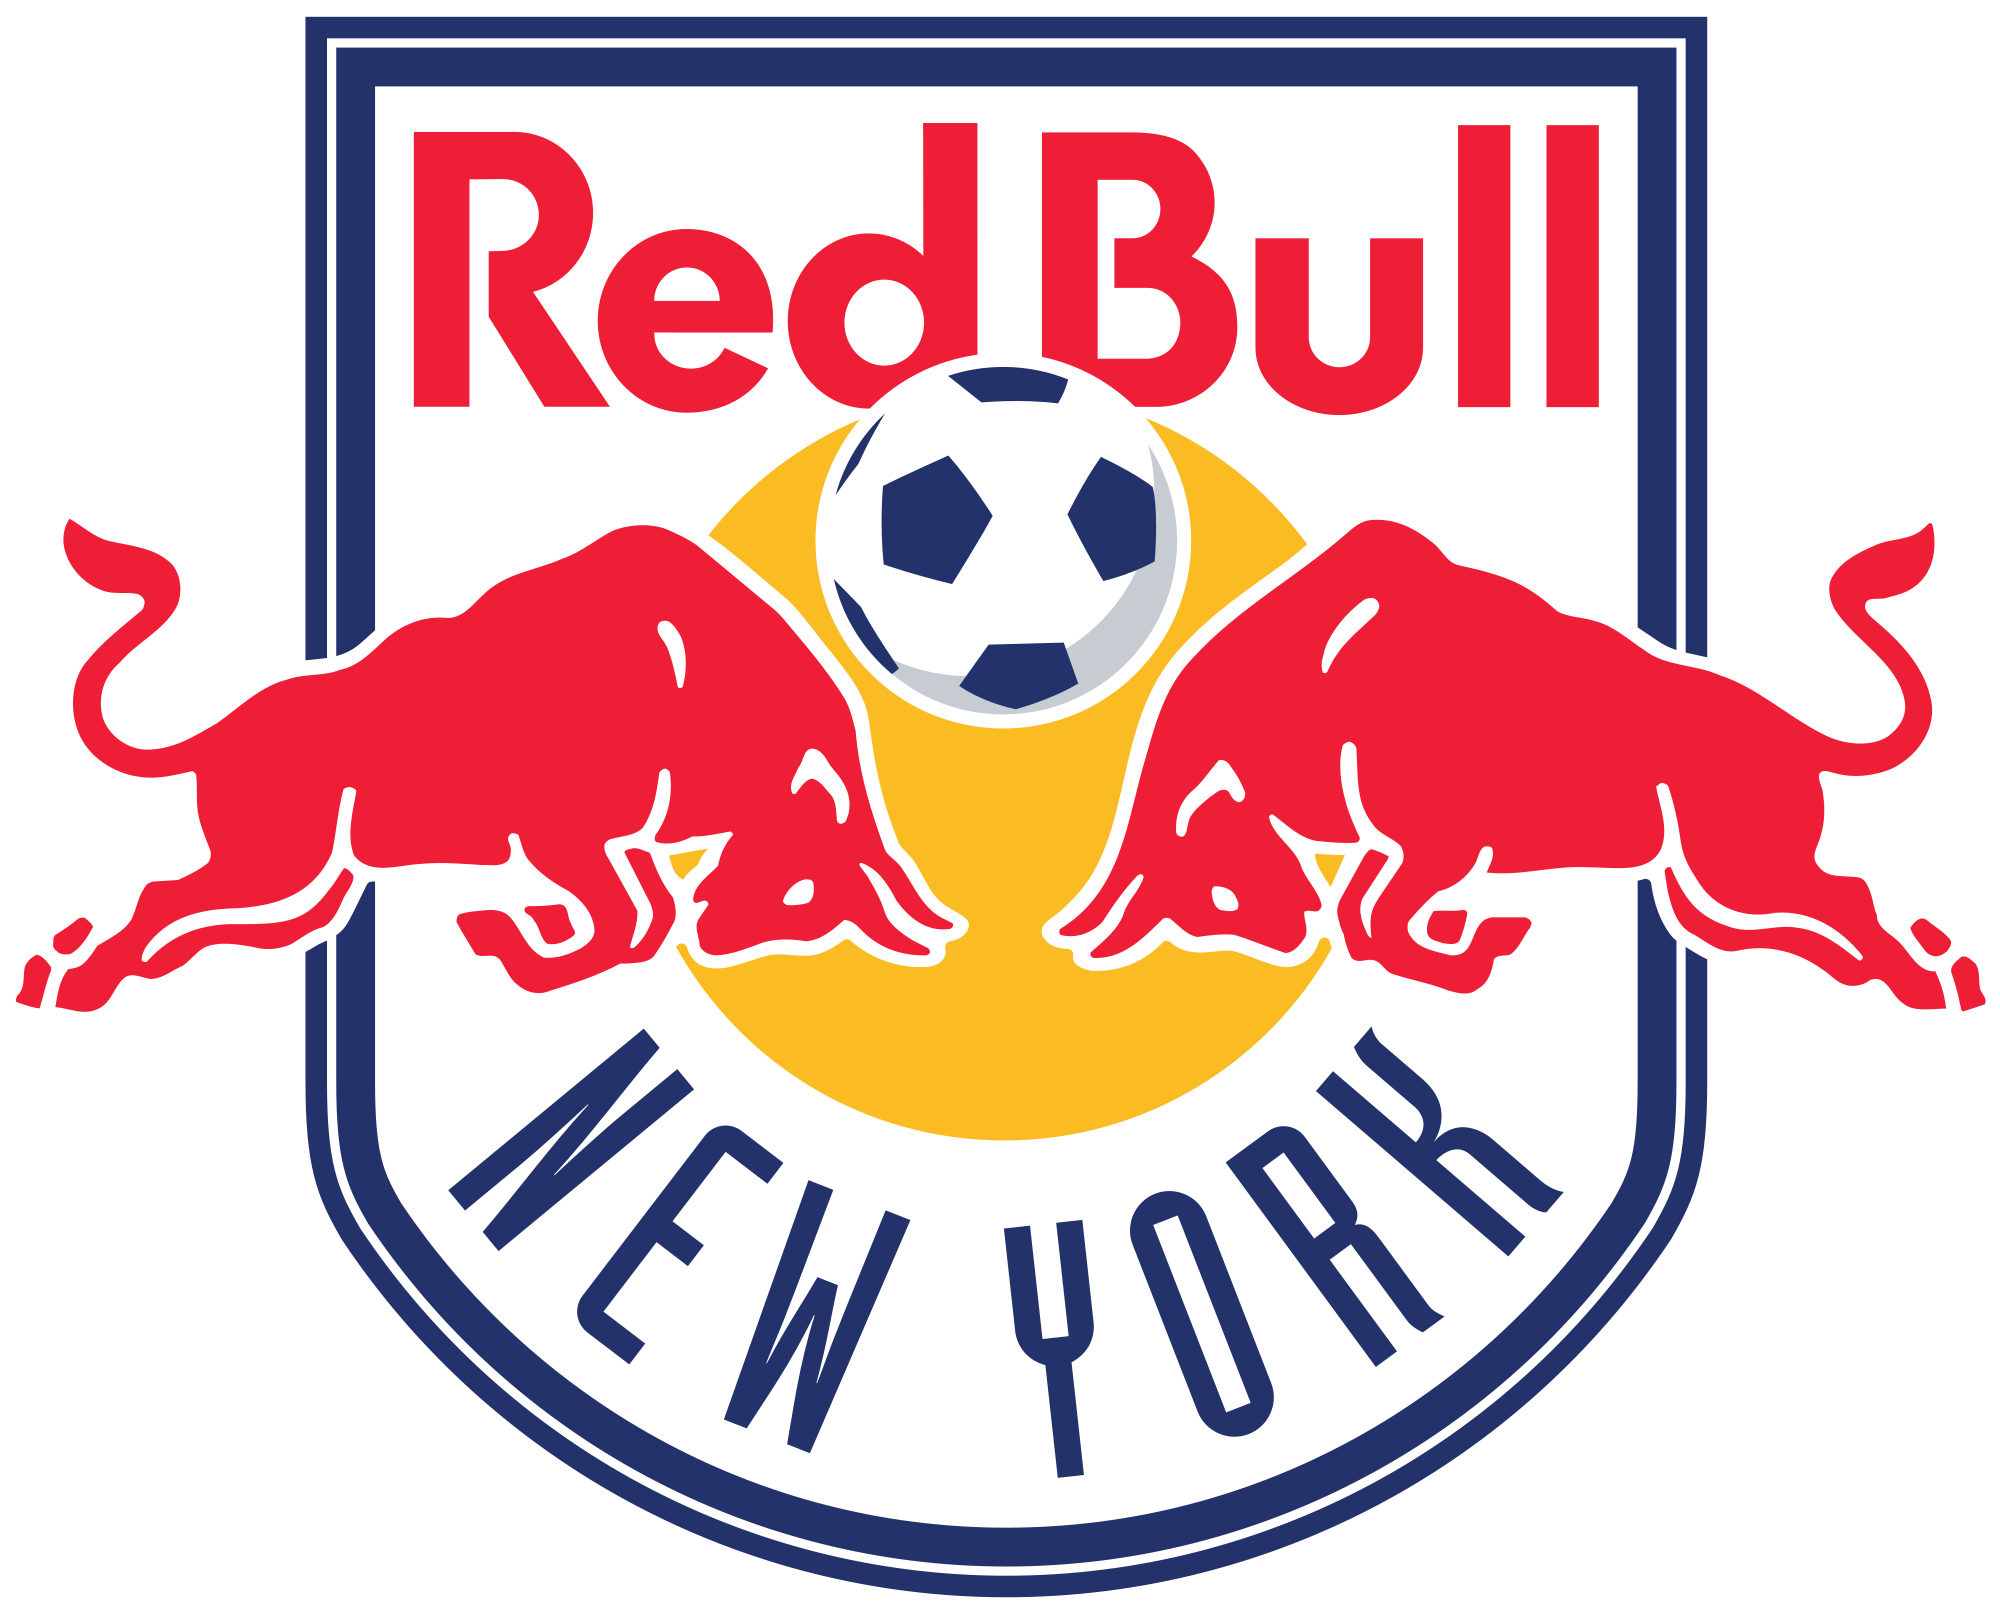 New York Red Bulls Transparent Png Clipart Free Download Ywd